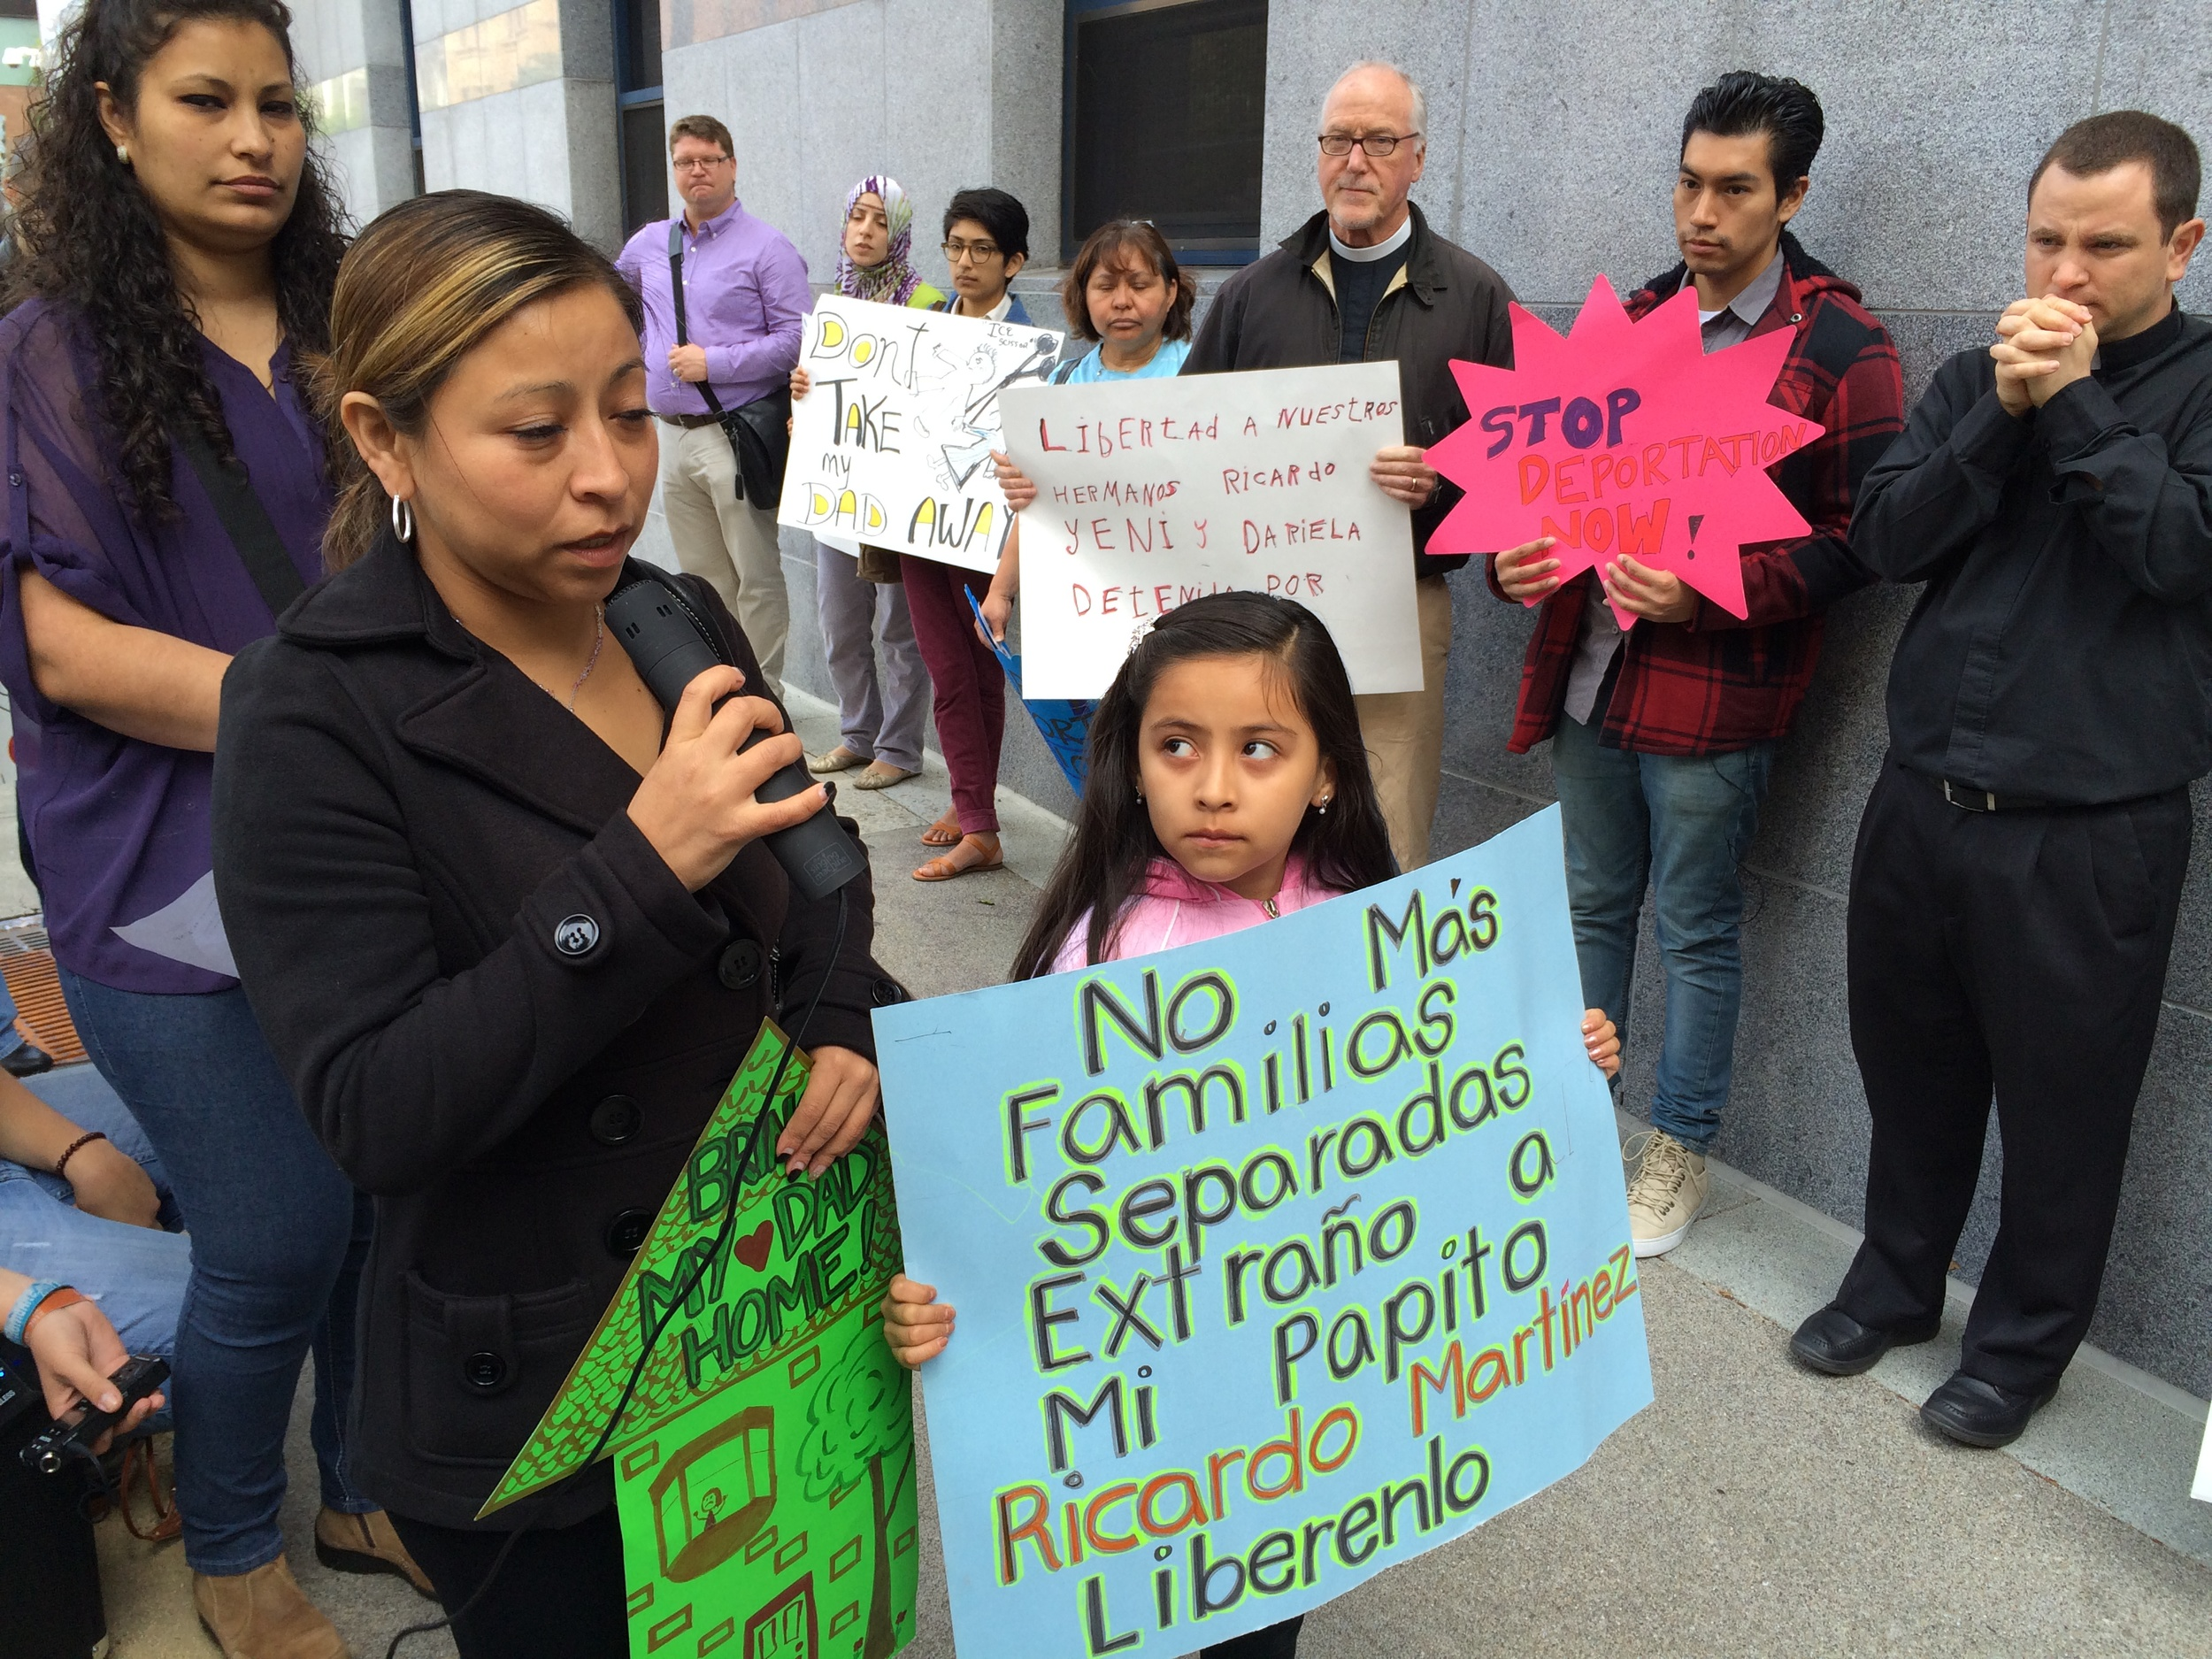 Ricardo's wife and daughter pleading with the media and immigration authorities to allow Ricardo to come home.